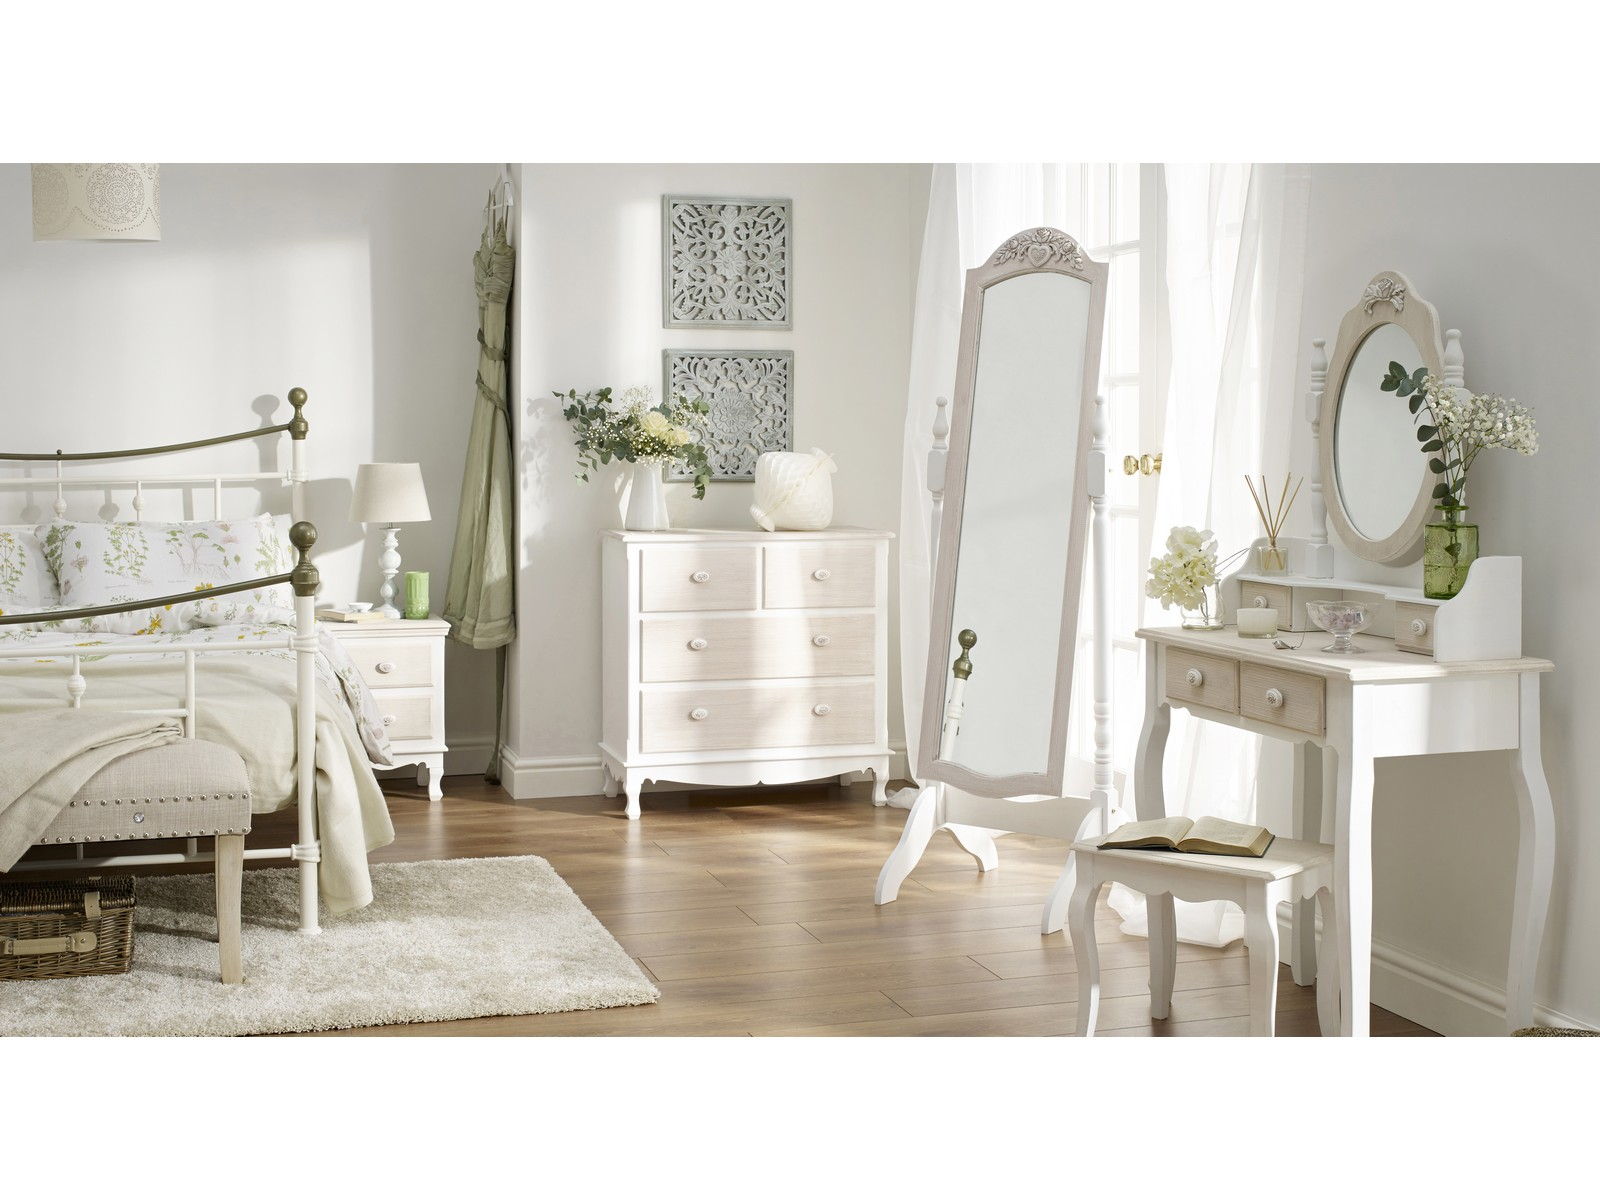 Juliette Shabby Chic Bedroom Furniture - Distressed Wood & White -  Assembled | eBay